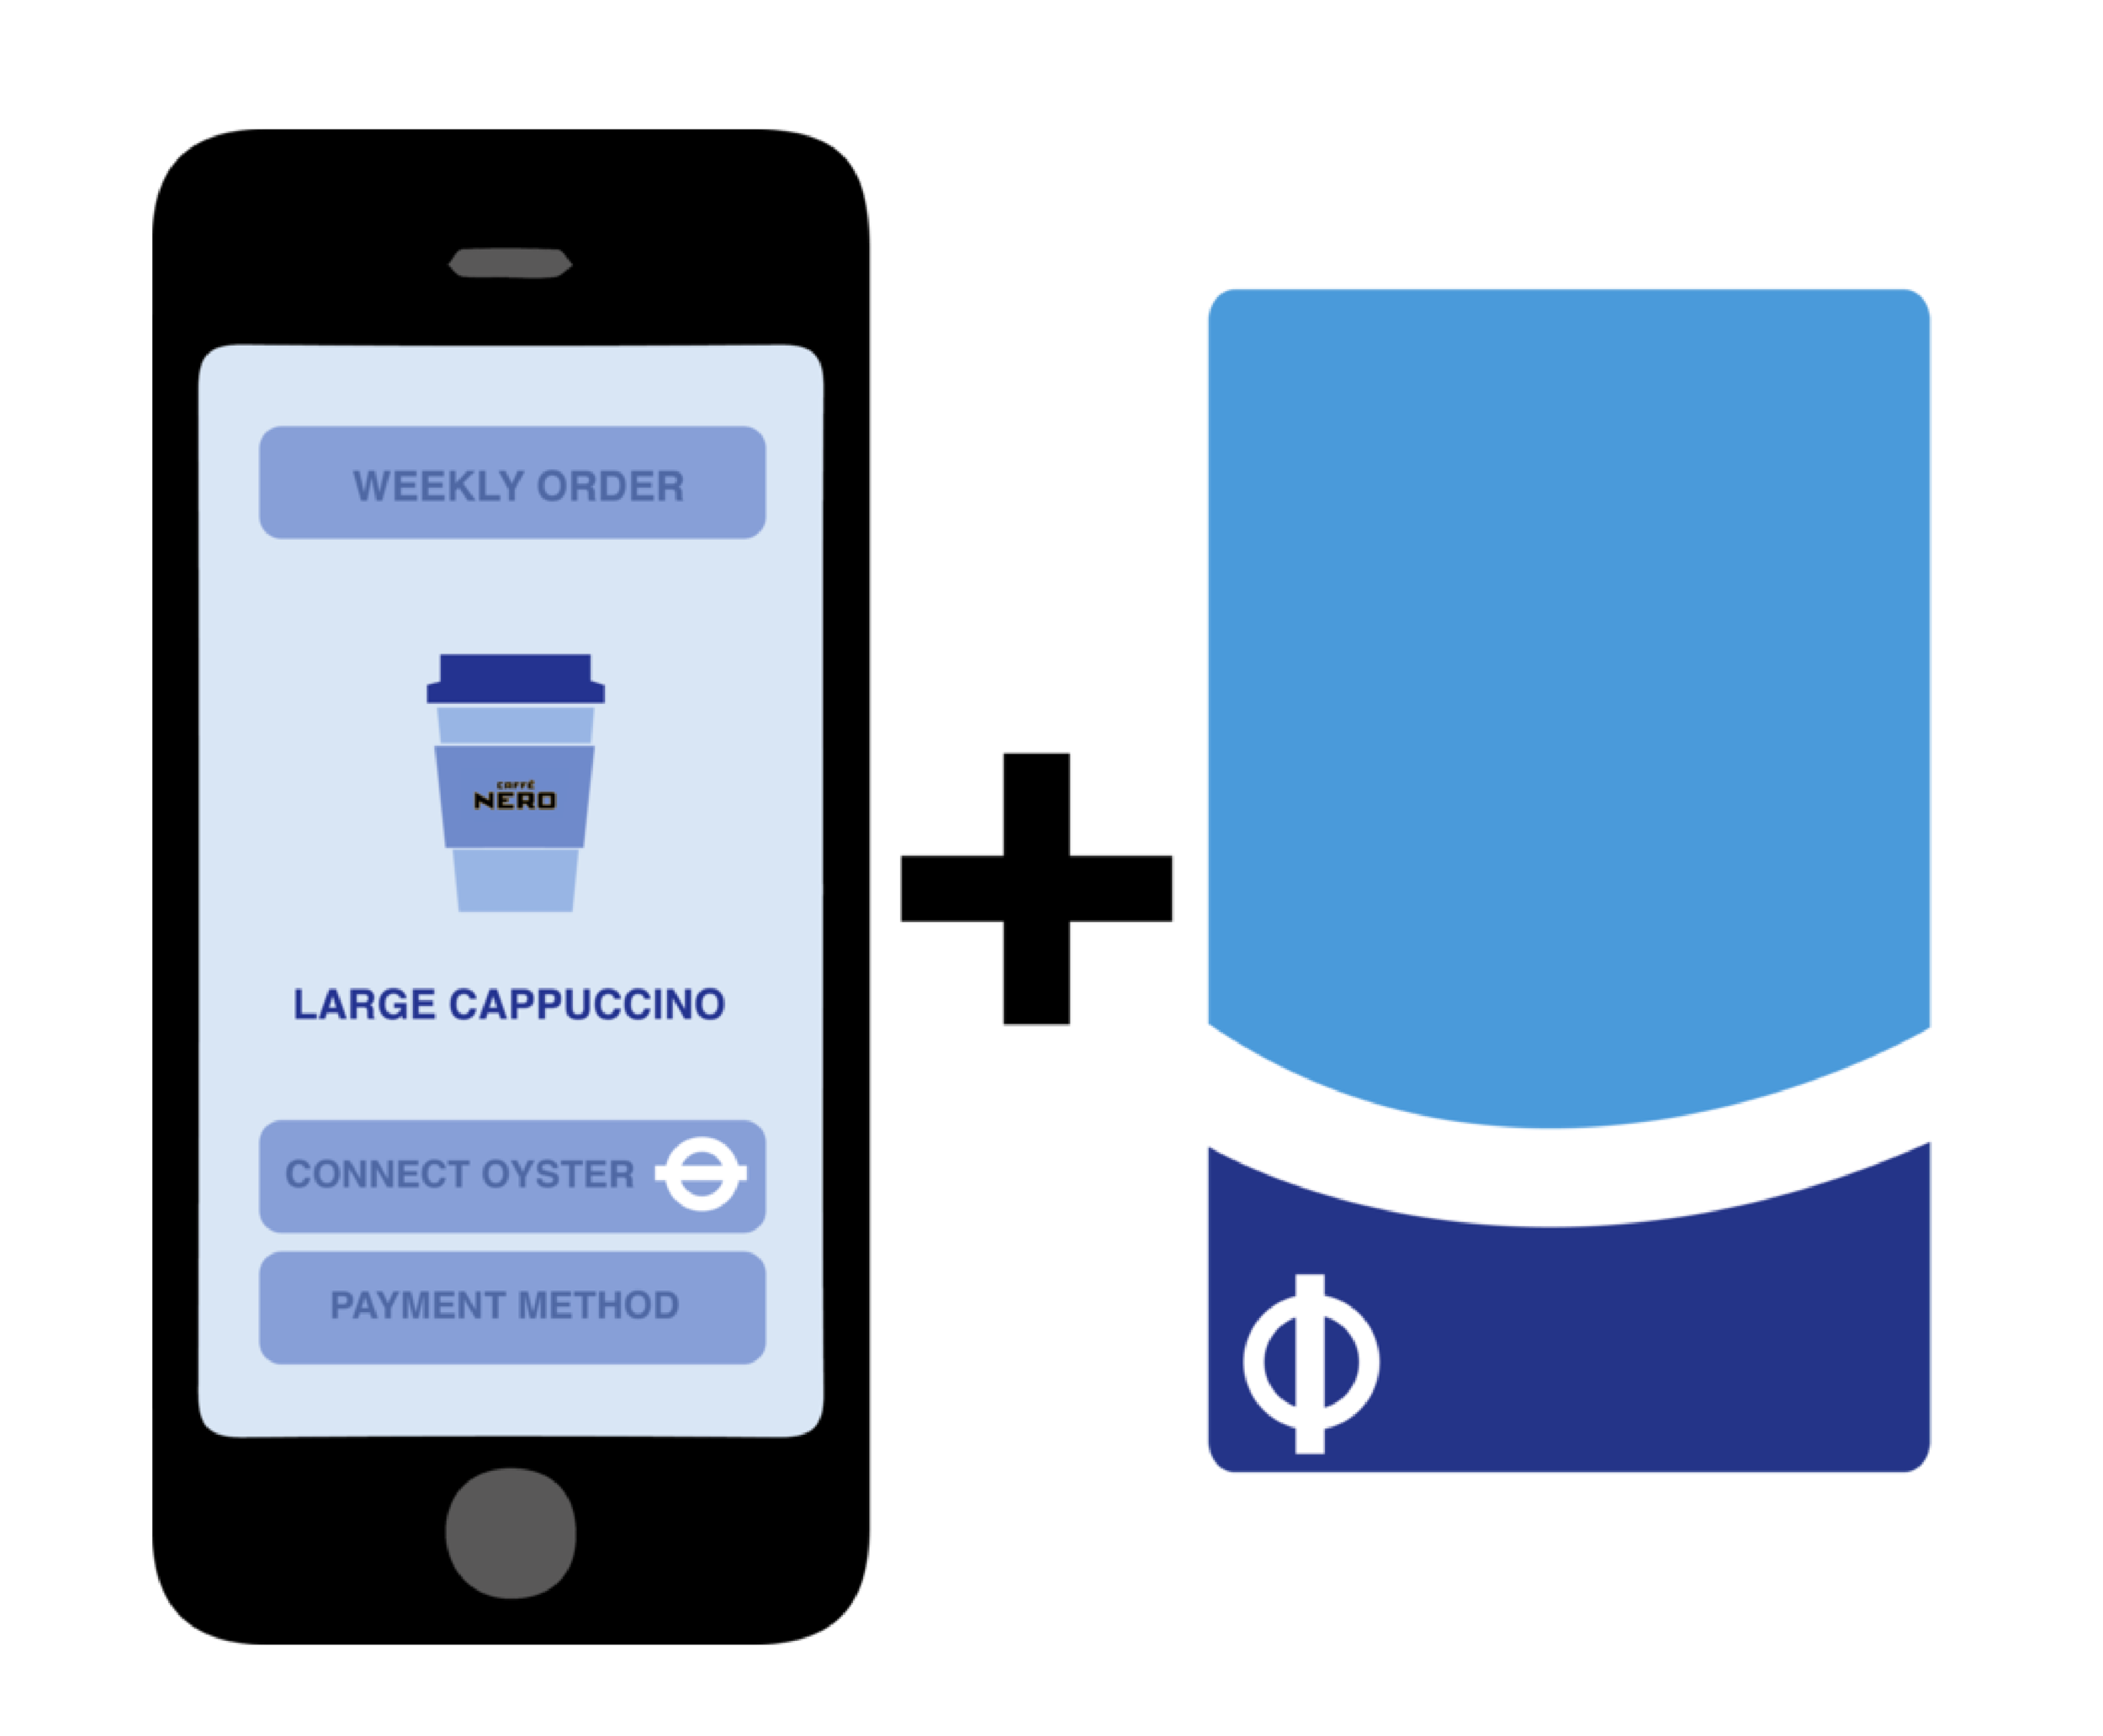 Synchronising the Coffee CAPP with your Oyster card allows you to set up a weekly order which is activated whenever you tap in at the station.